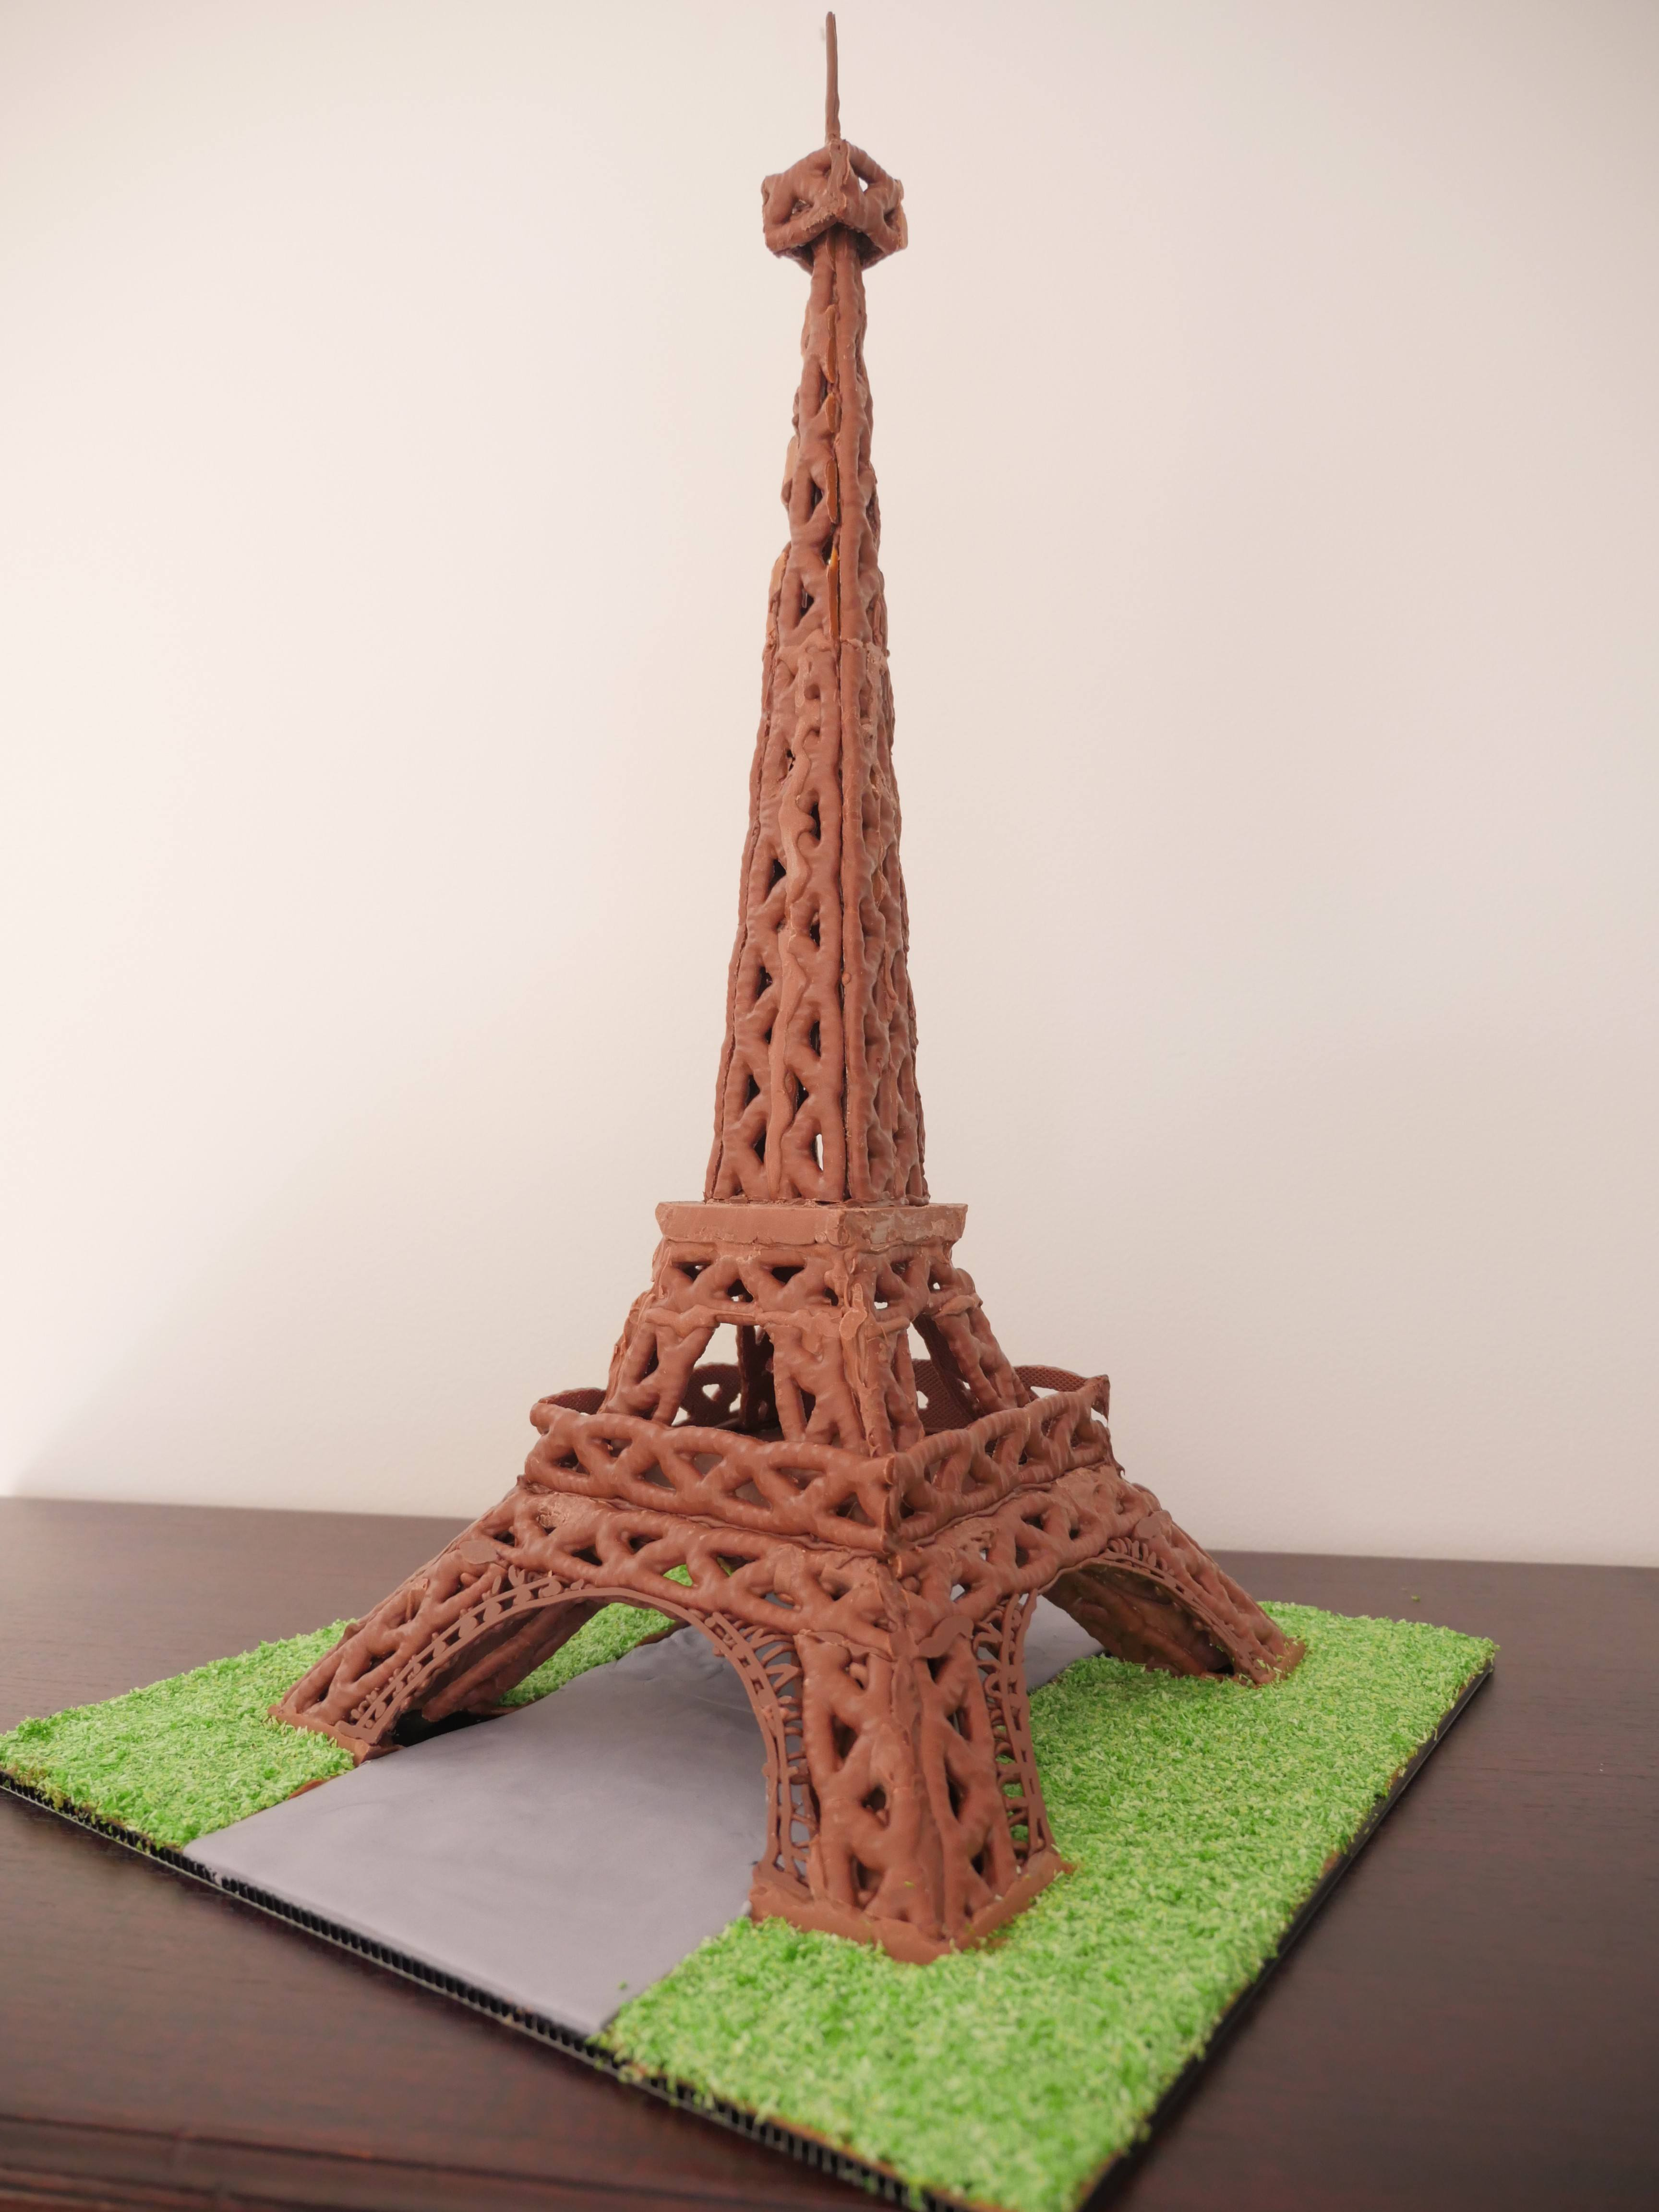 howtocookthat cakes dessert chocolate chocolate eiffel tower